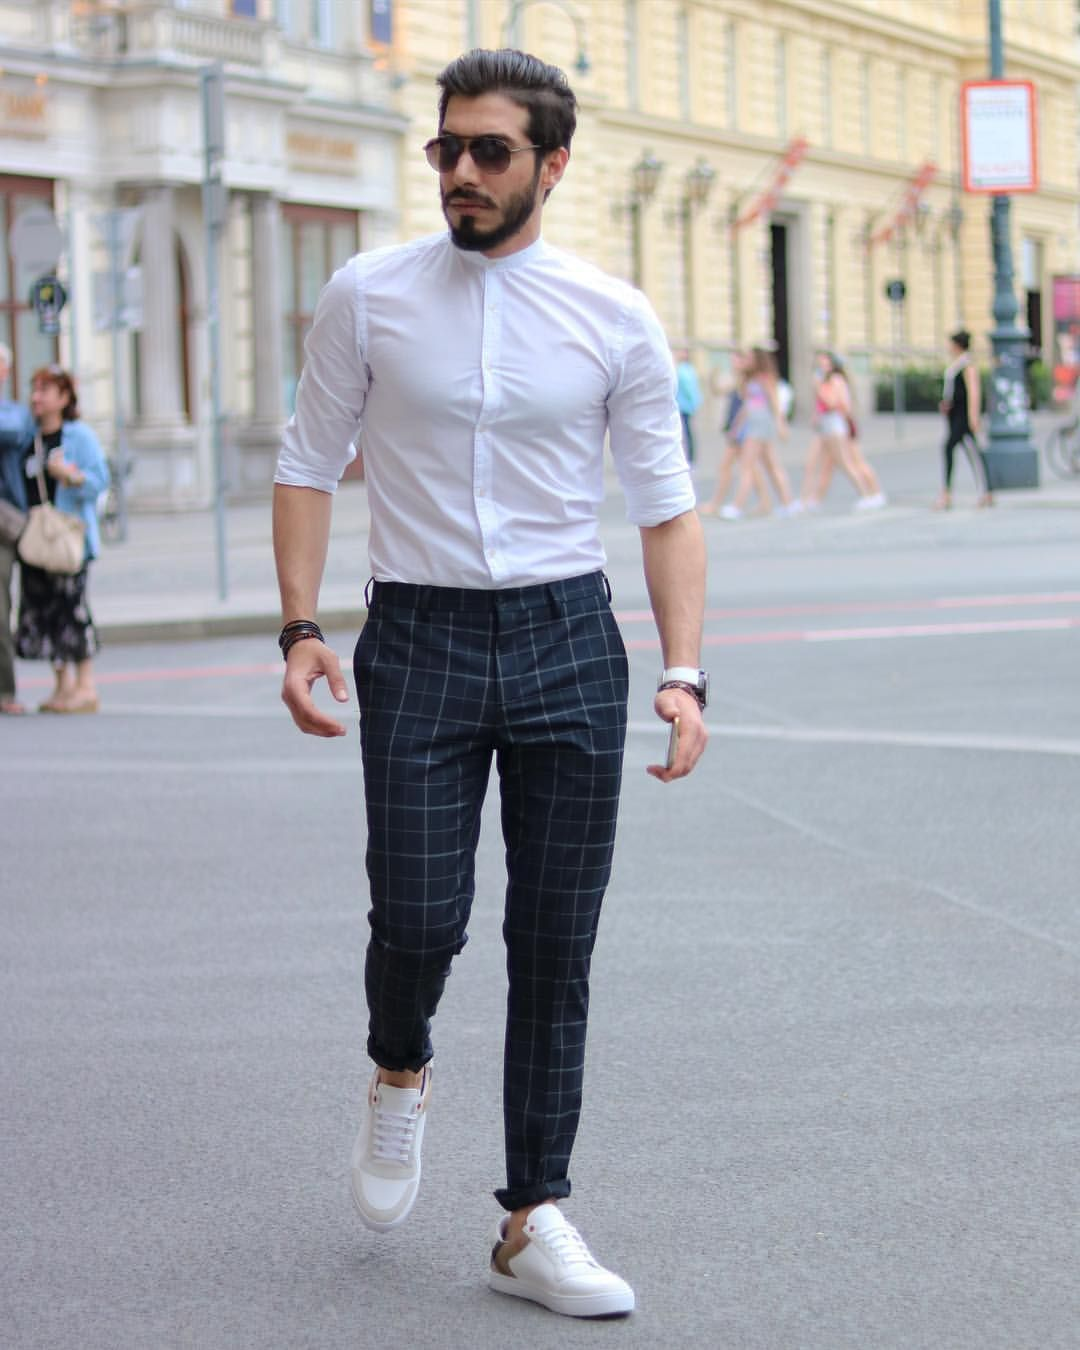 fridays fit in 2021 | Men fashion casual outfits, Stylish